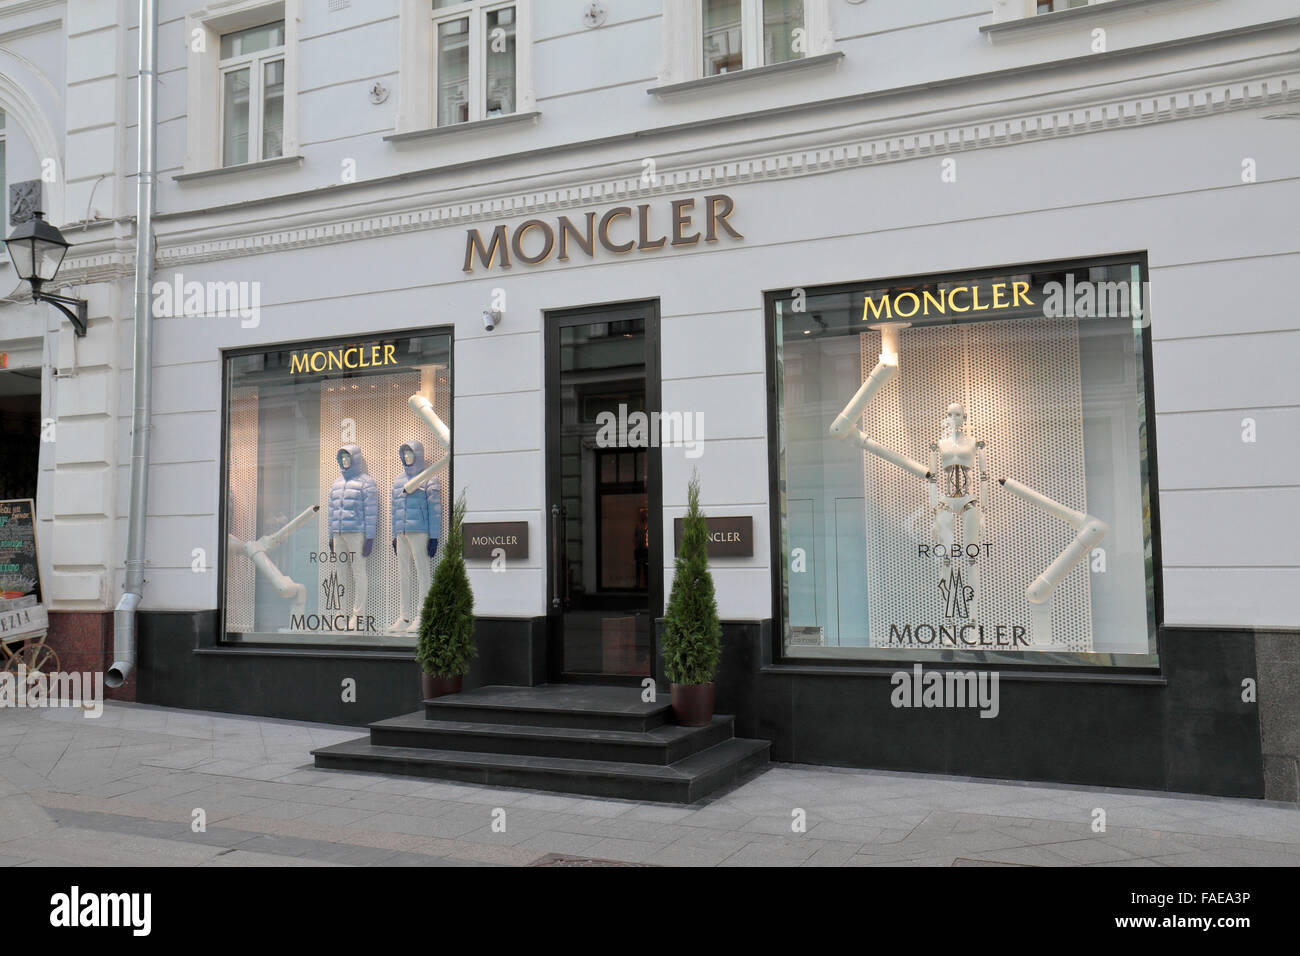 Moncler Shop Stockfotos & Moncler Shop Bilder Alamy